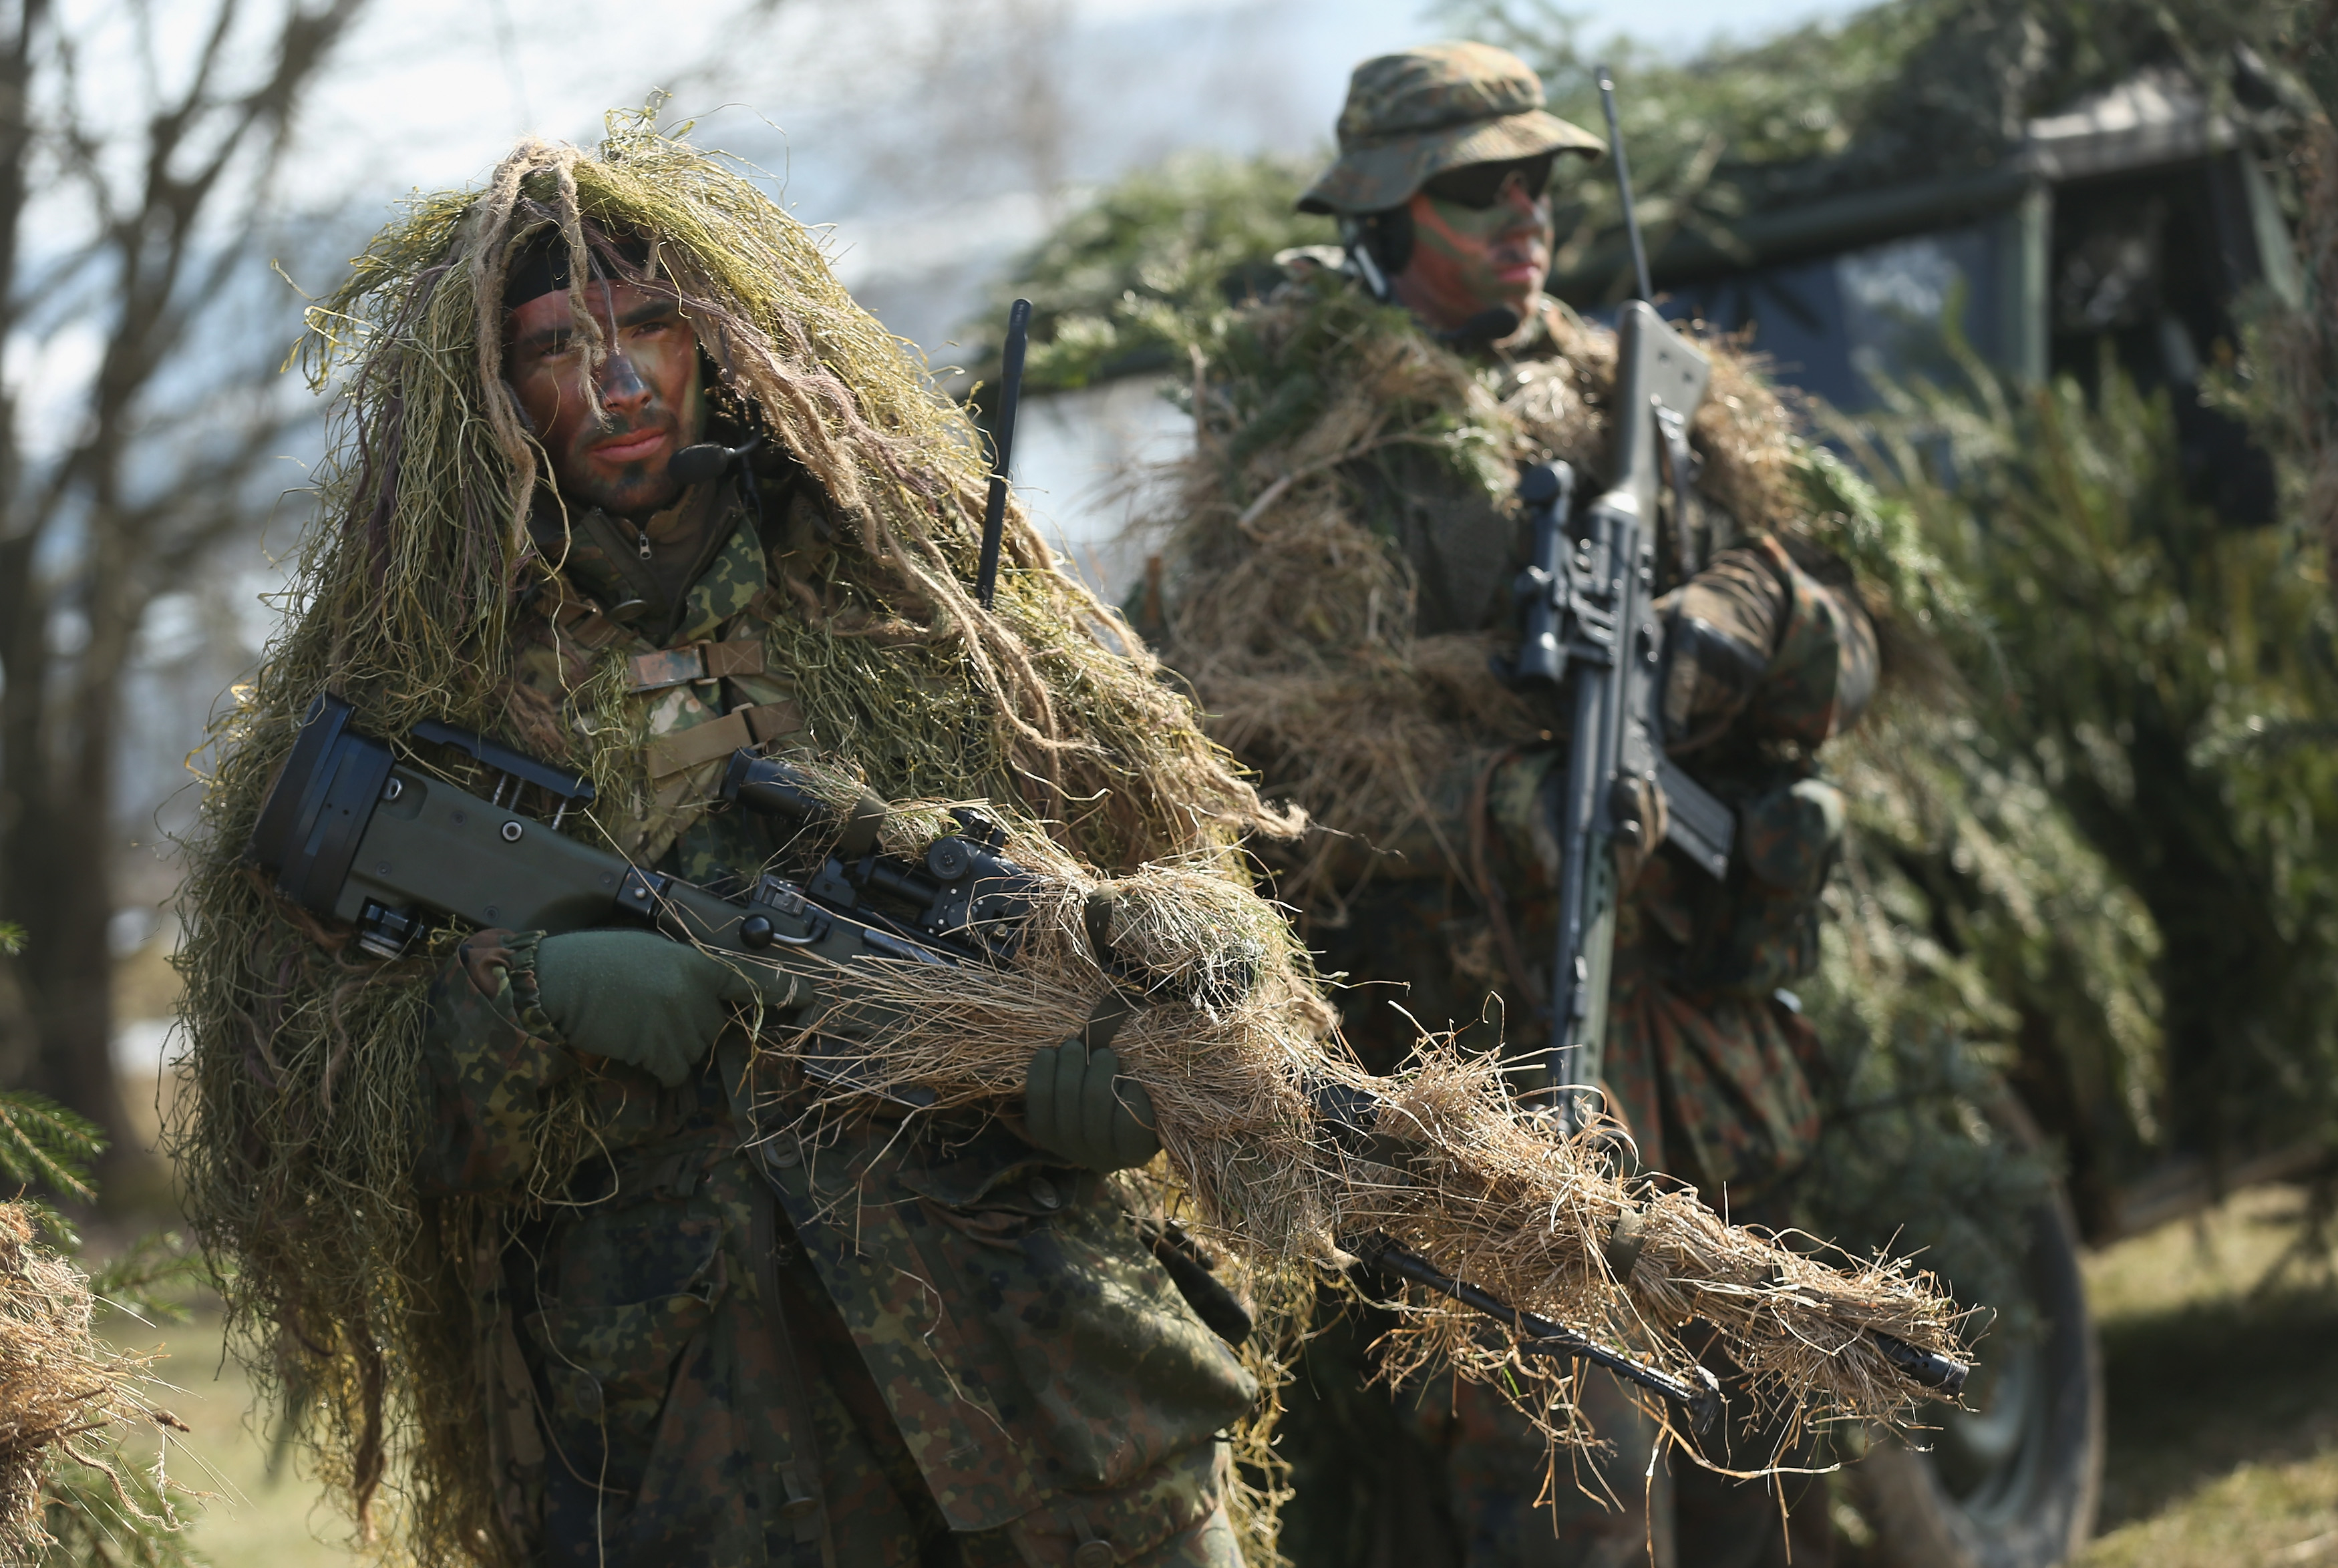 MARIENBERG, GERMANY - MARCH 10: Members of the German Bundeswehr's 371st Armoured Infantry Battalion (Panzergredanadierbataillon 371) stand in camouflage with sniper rifles during a media event at the battalion's base on March 10, 2015 in Marienberg, Germany.